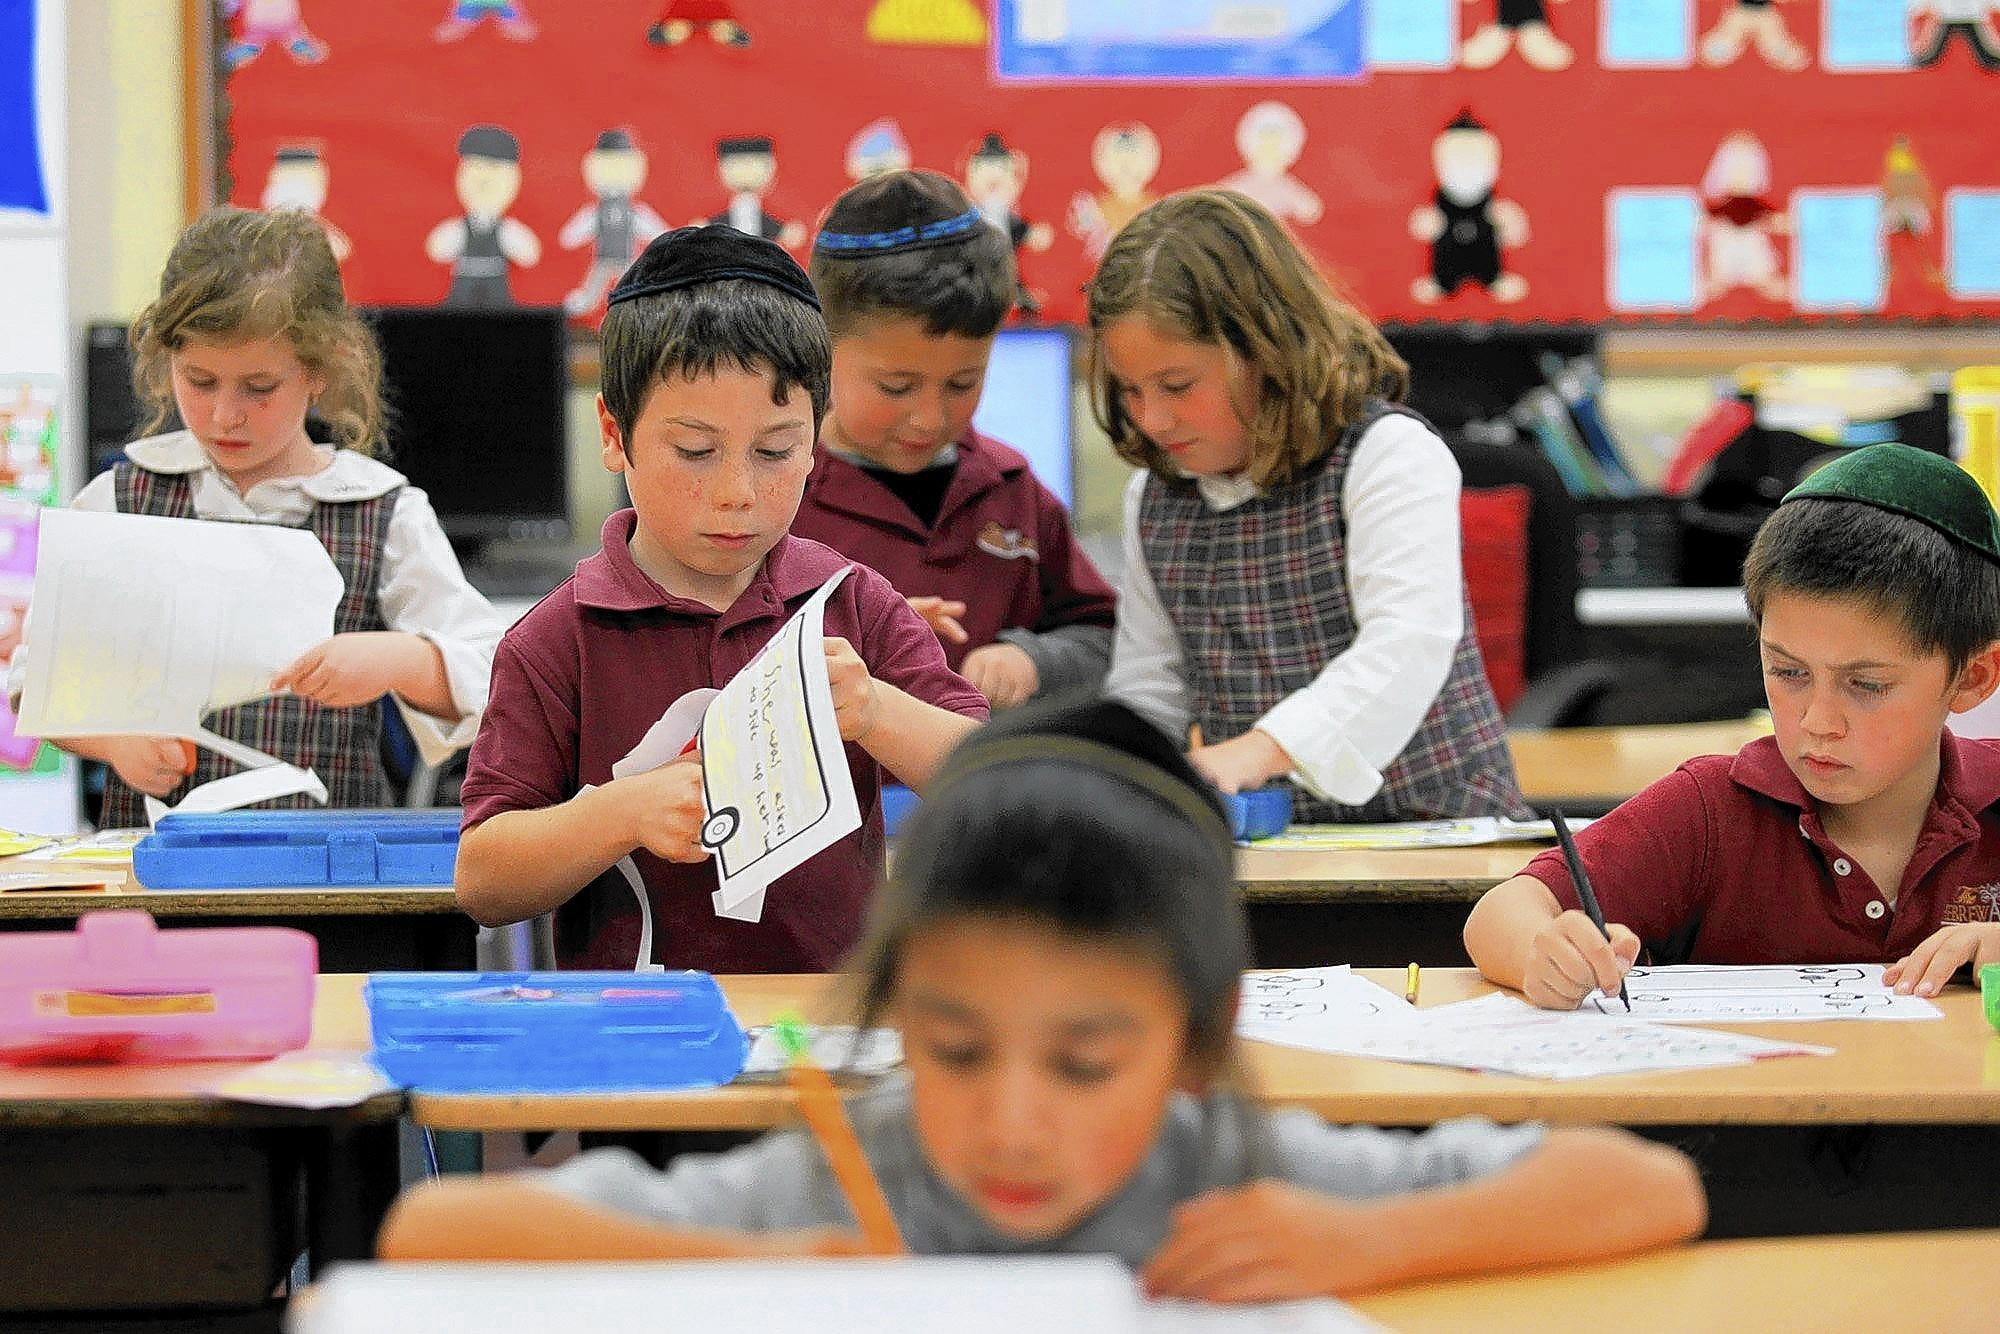 First-graders work on an activity during Susan Choi's General Studies class at the Hebrew Academy in Huntington Beach.